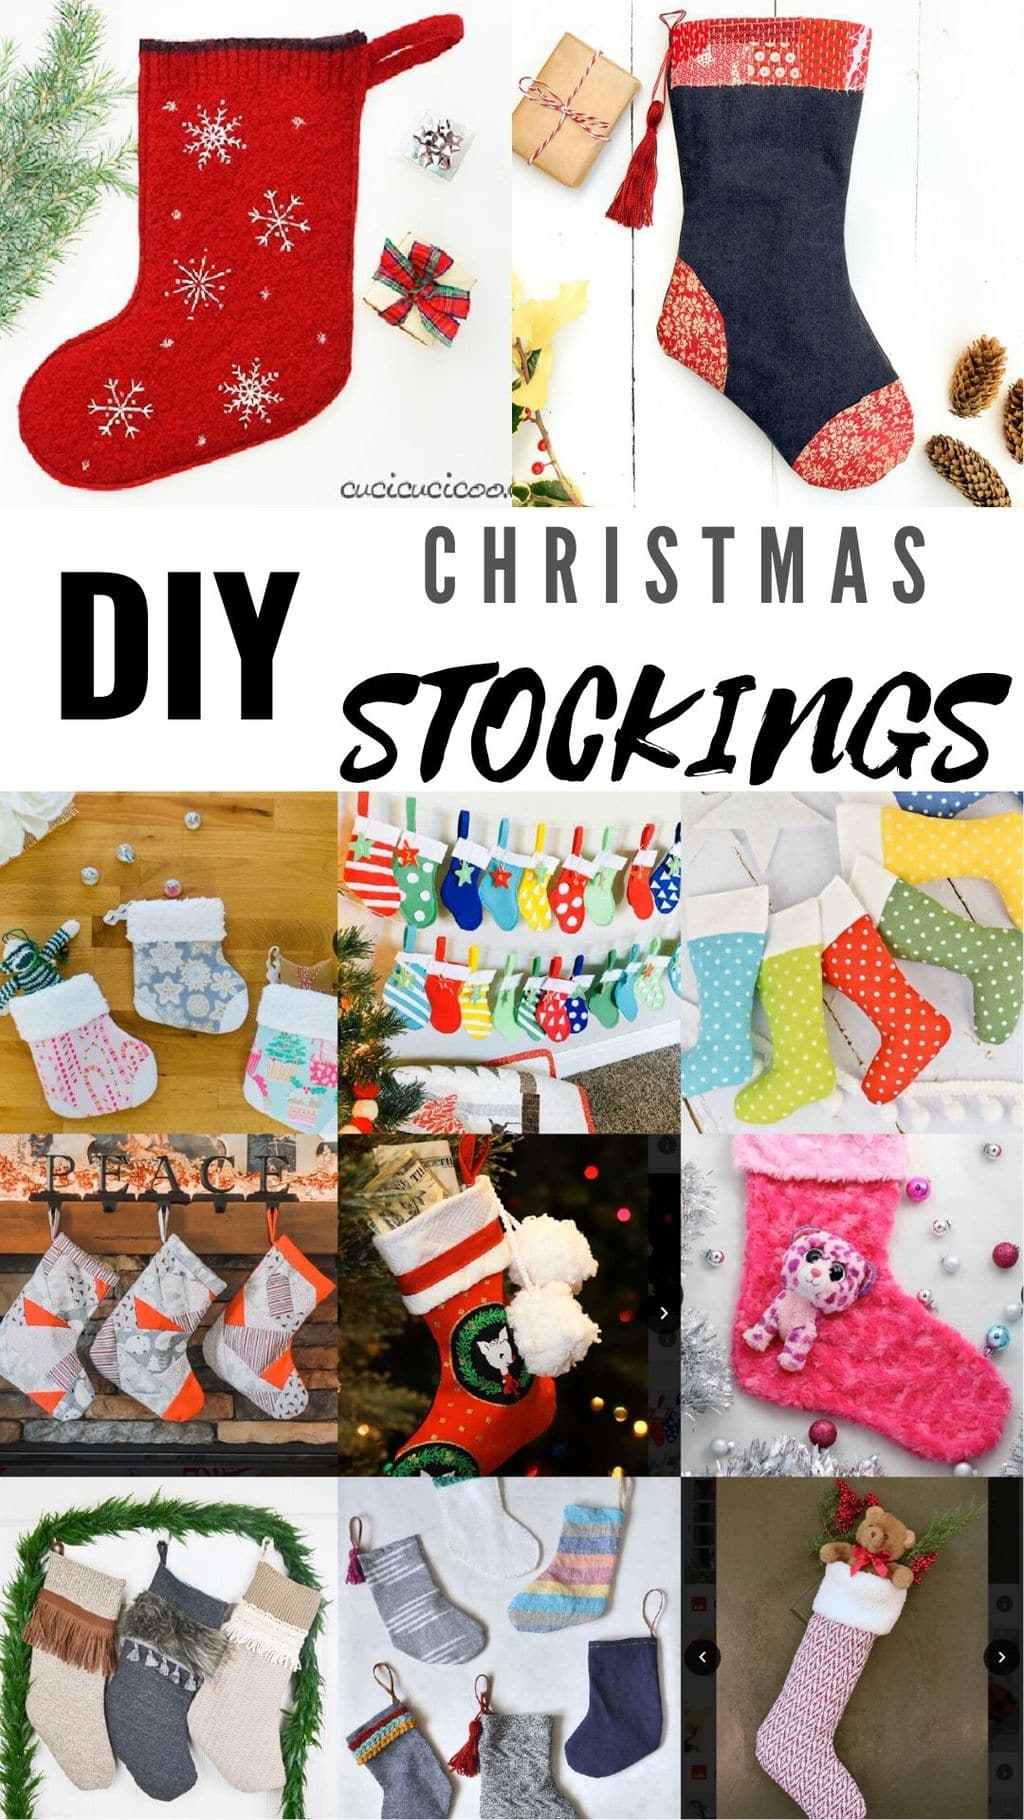 13+ FREE Stocking Patterns and Tutorials 2